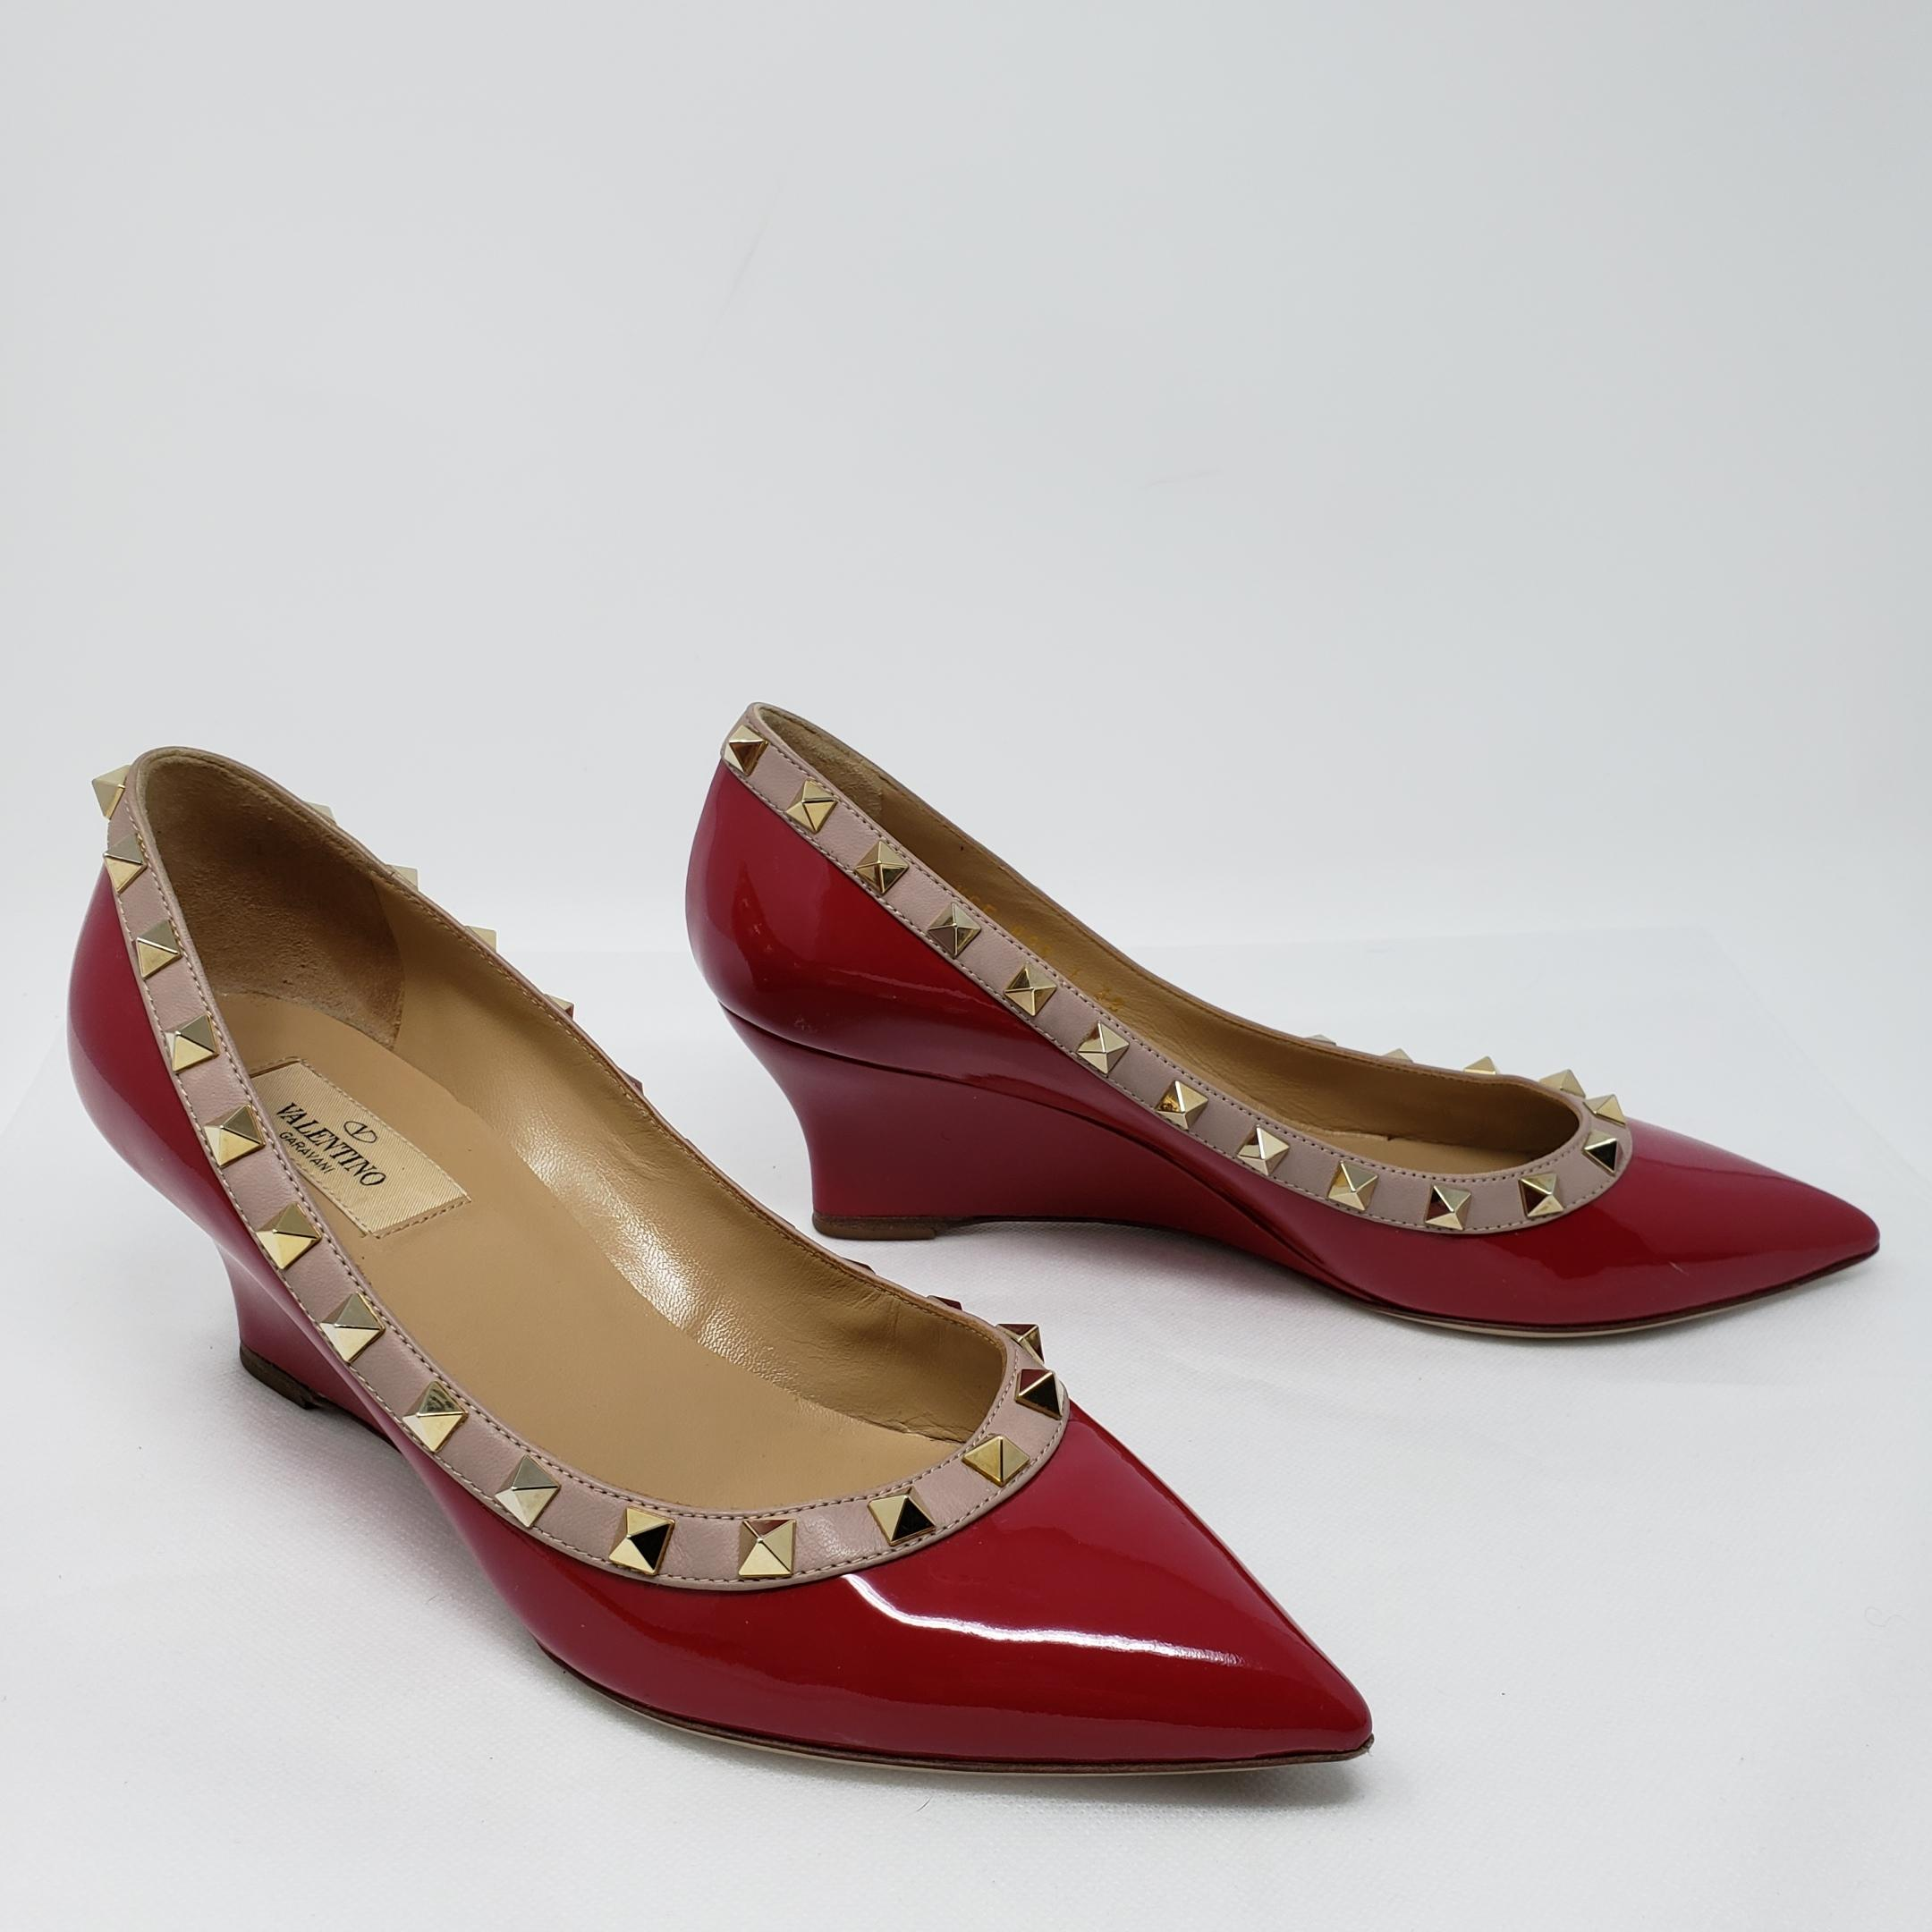 a34f8675763d ... Man s Woman s——Valentino Red Beige Gold Raspberry Patent Leather  Rockstud Wedges Size Size ...